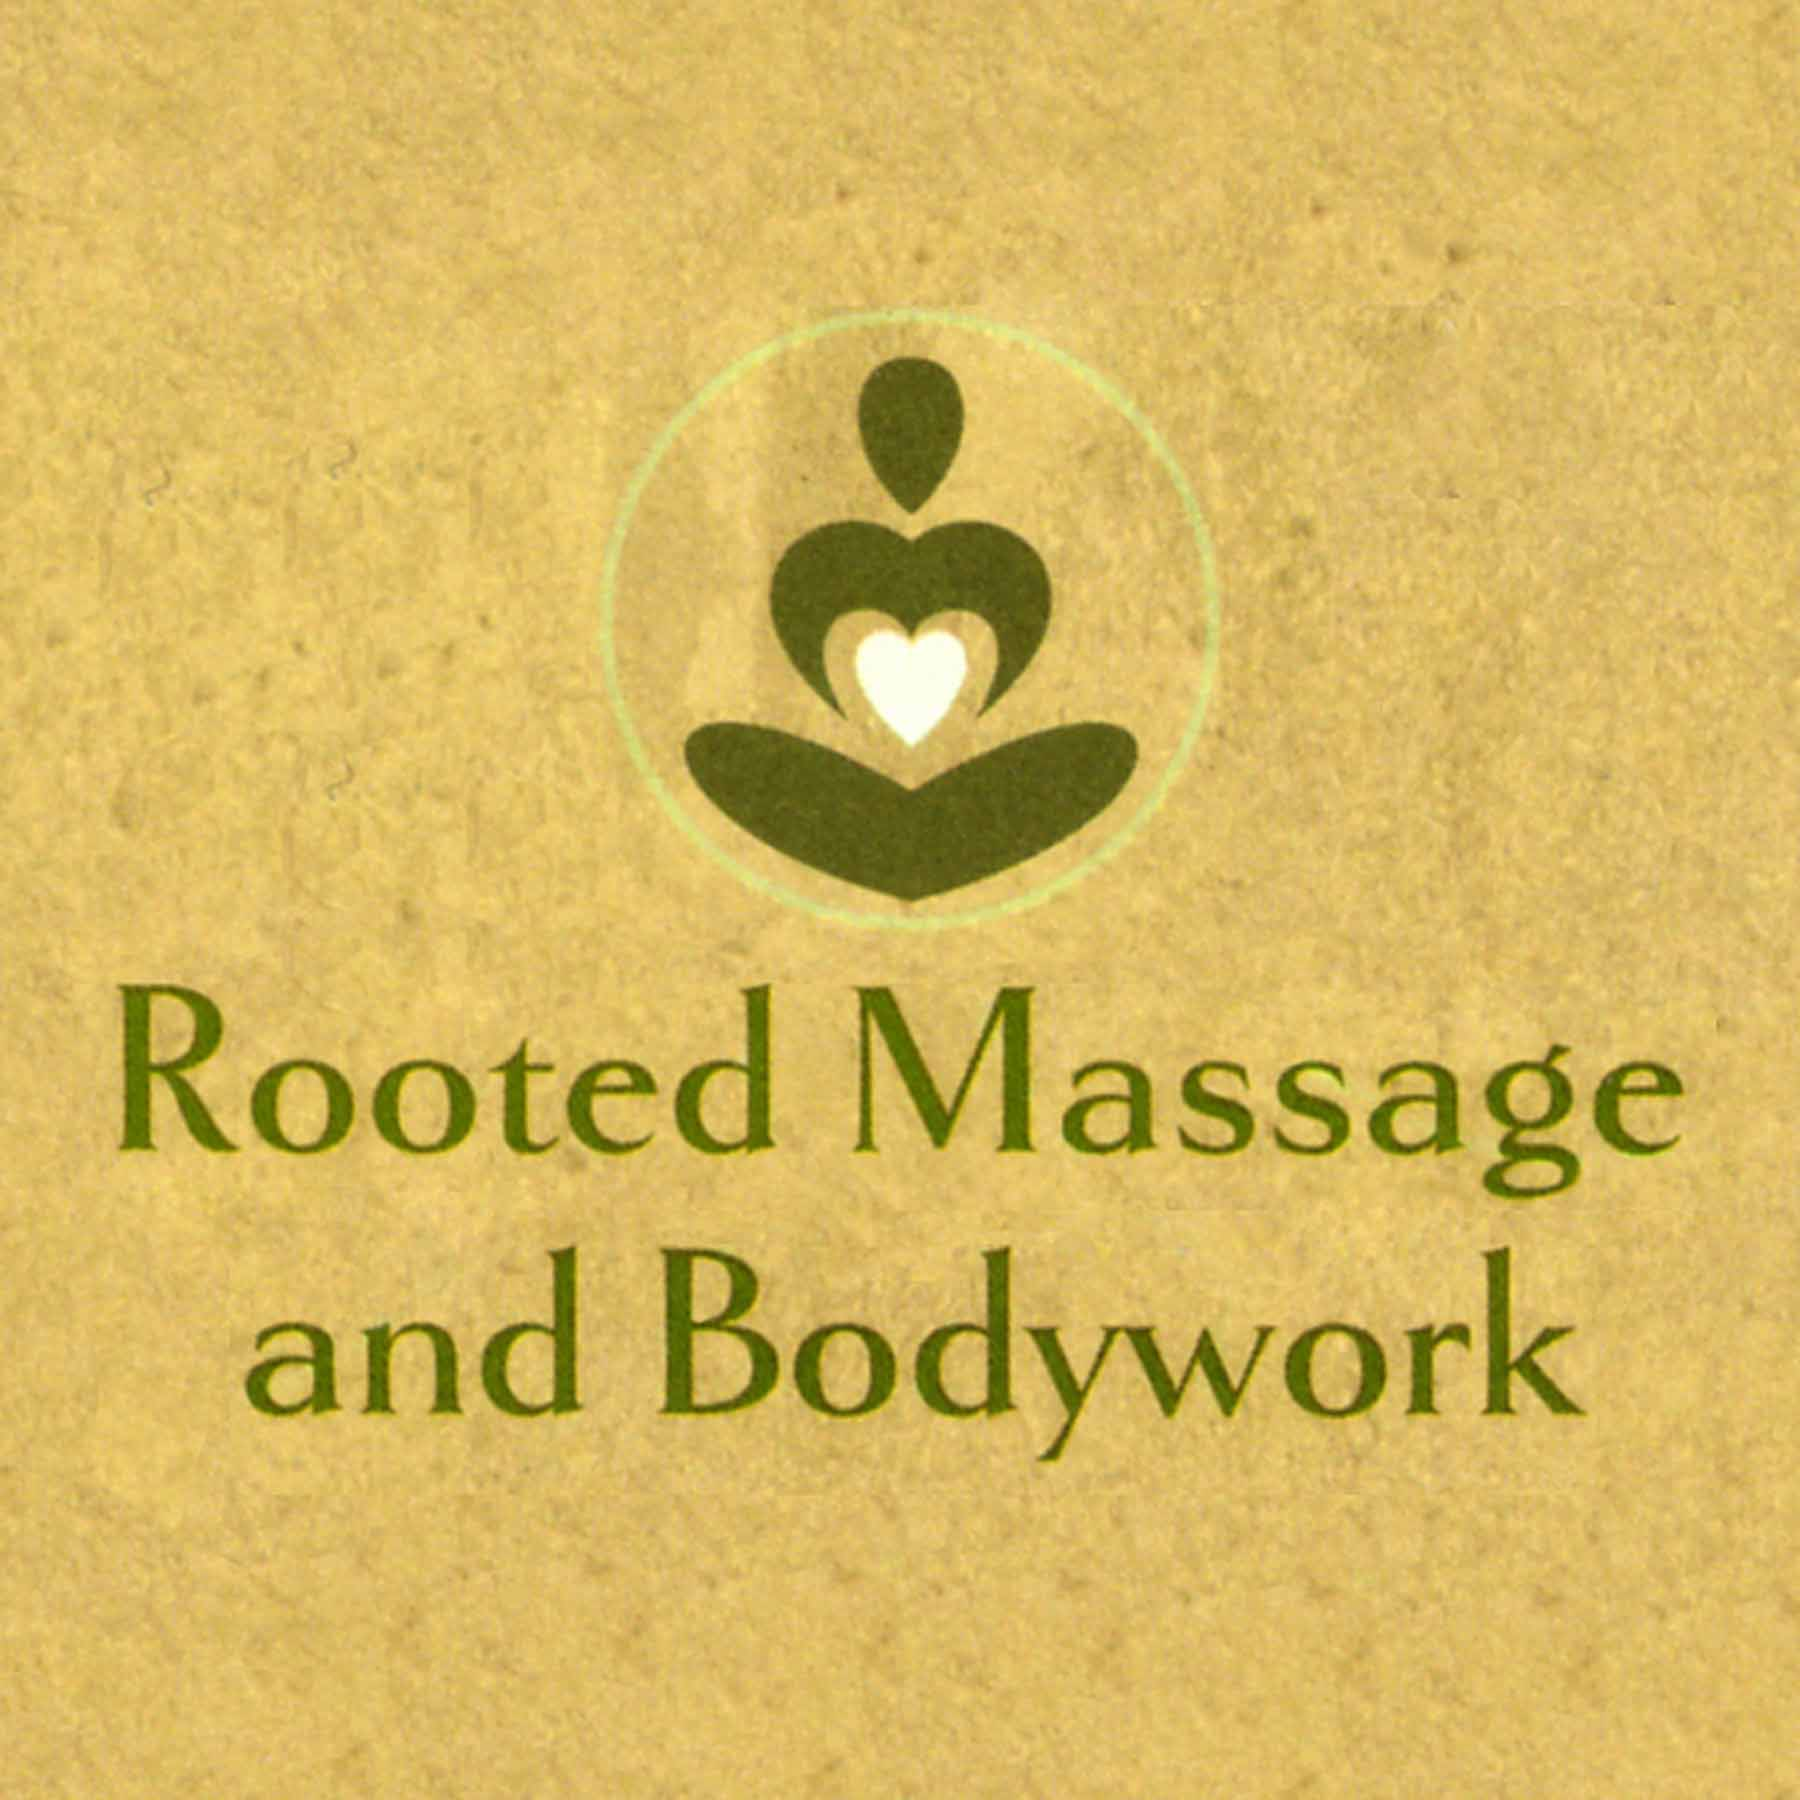 Rooted Massage and Bodywork McMinnville Oregon